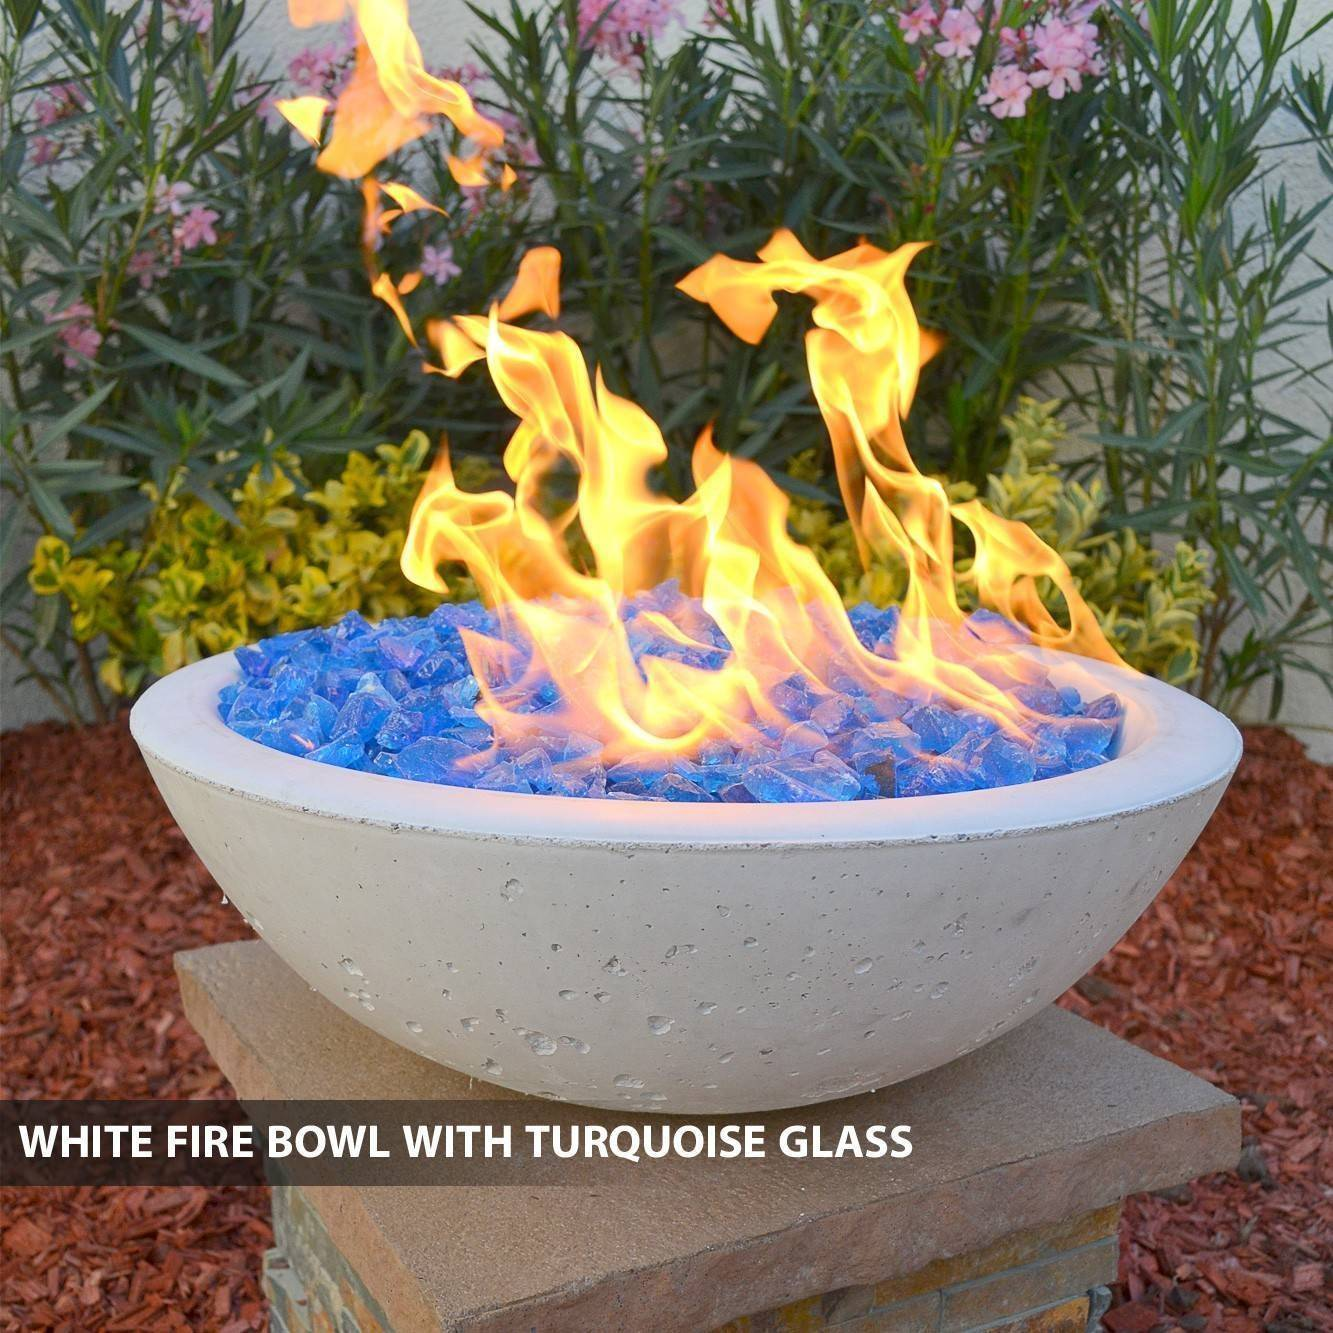 Concrete Fire Bowl White w/ Turqiuose